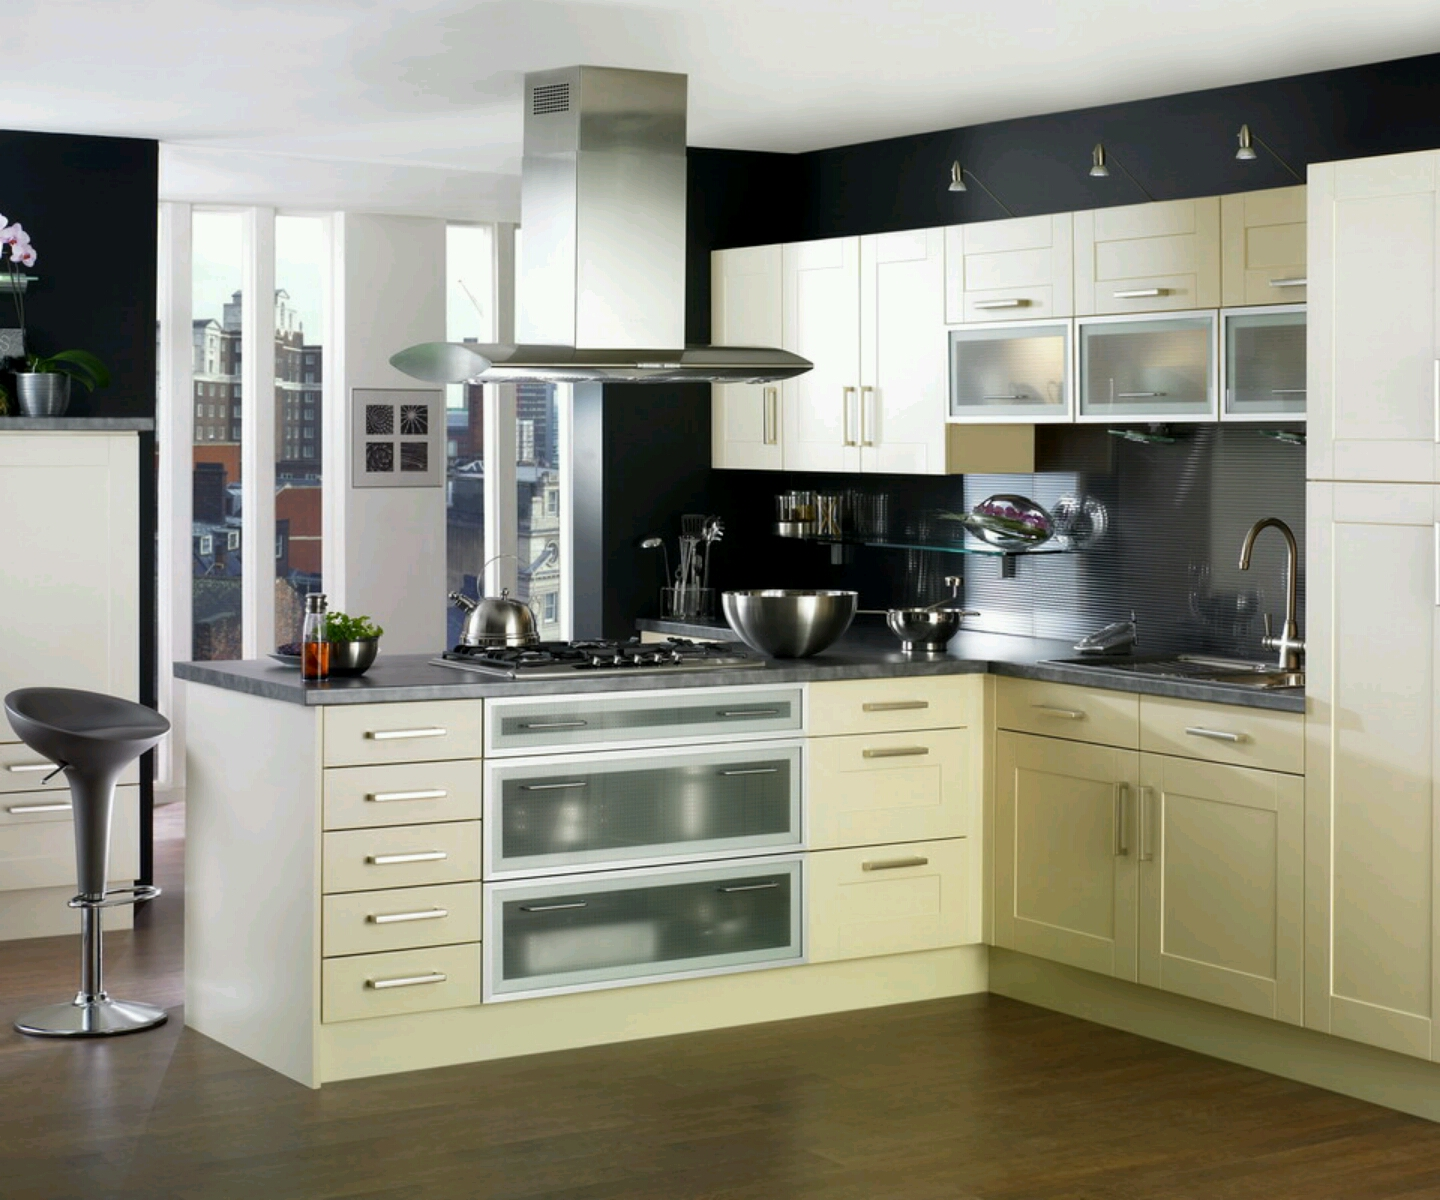 Modern Kitchen Cabinet Design in white